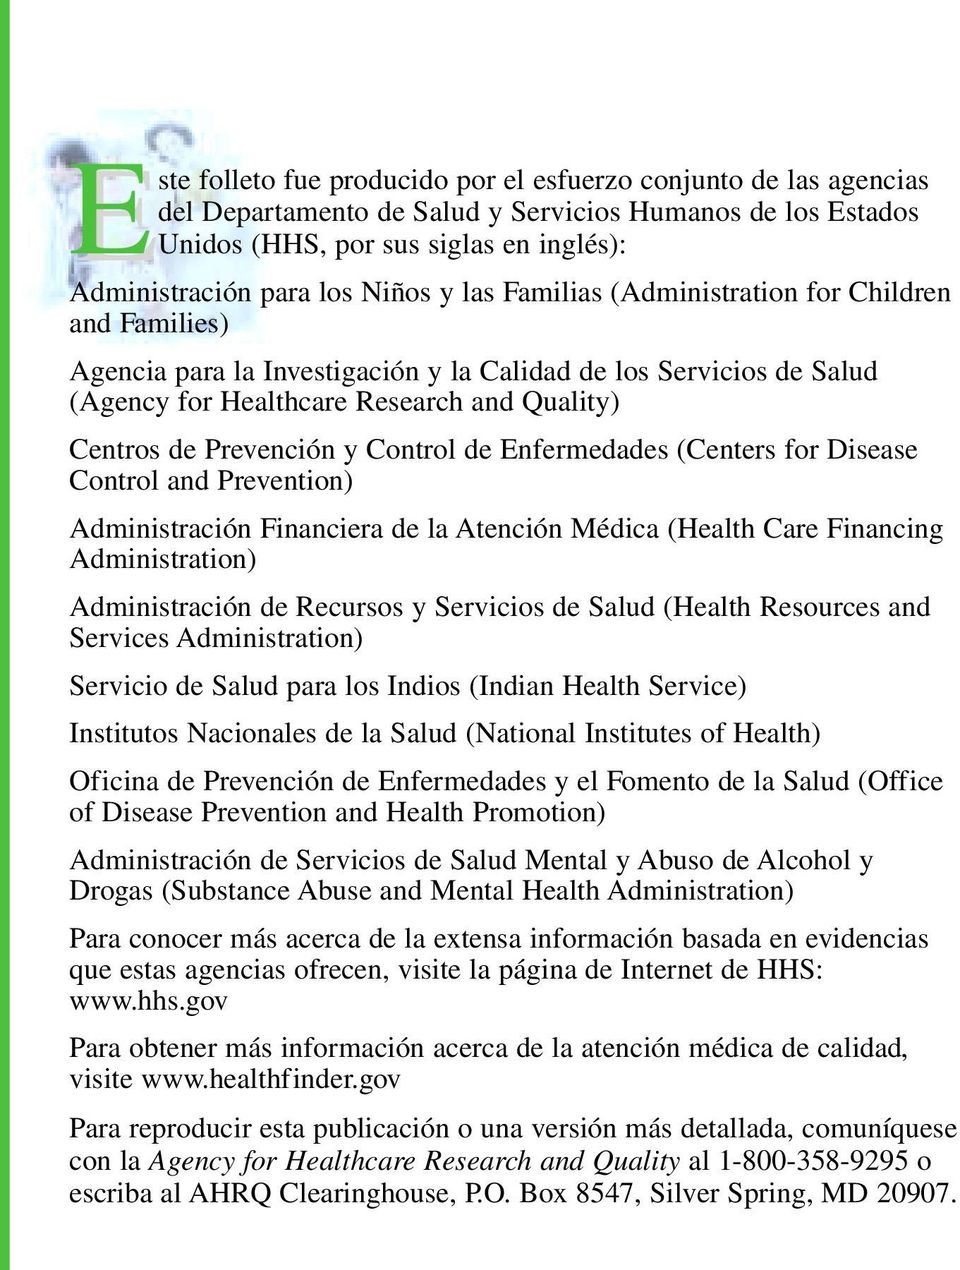 Control de Enfermedades (Centers for Disease Control and Prevention) Administración Financiera de la Atención Médica (Health Care Financing Administration) Administración de Recursos y Servicios de